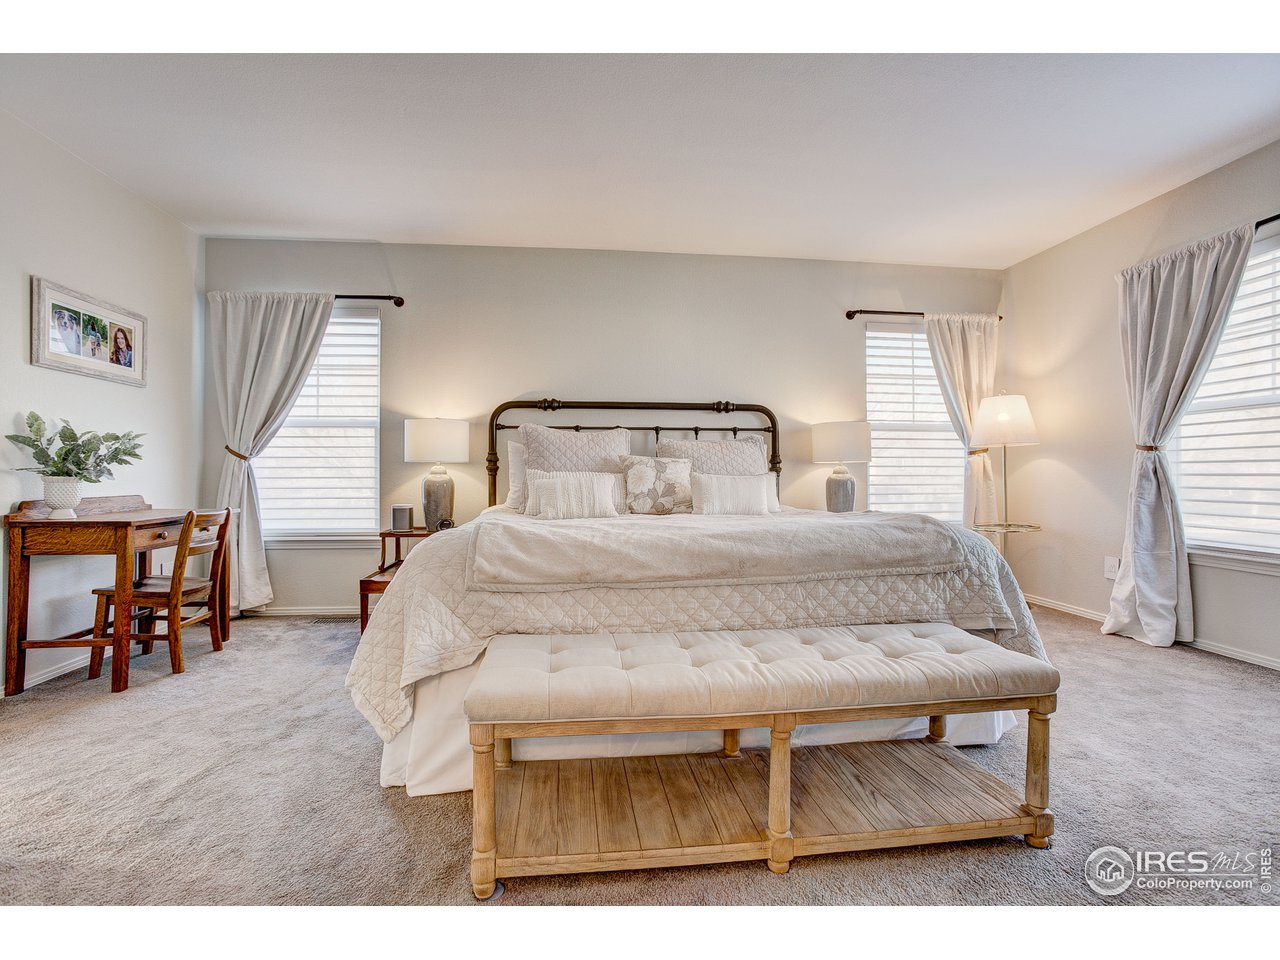 Spacious & tranquil master bedroom